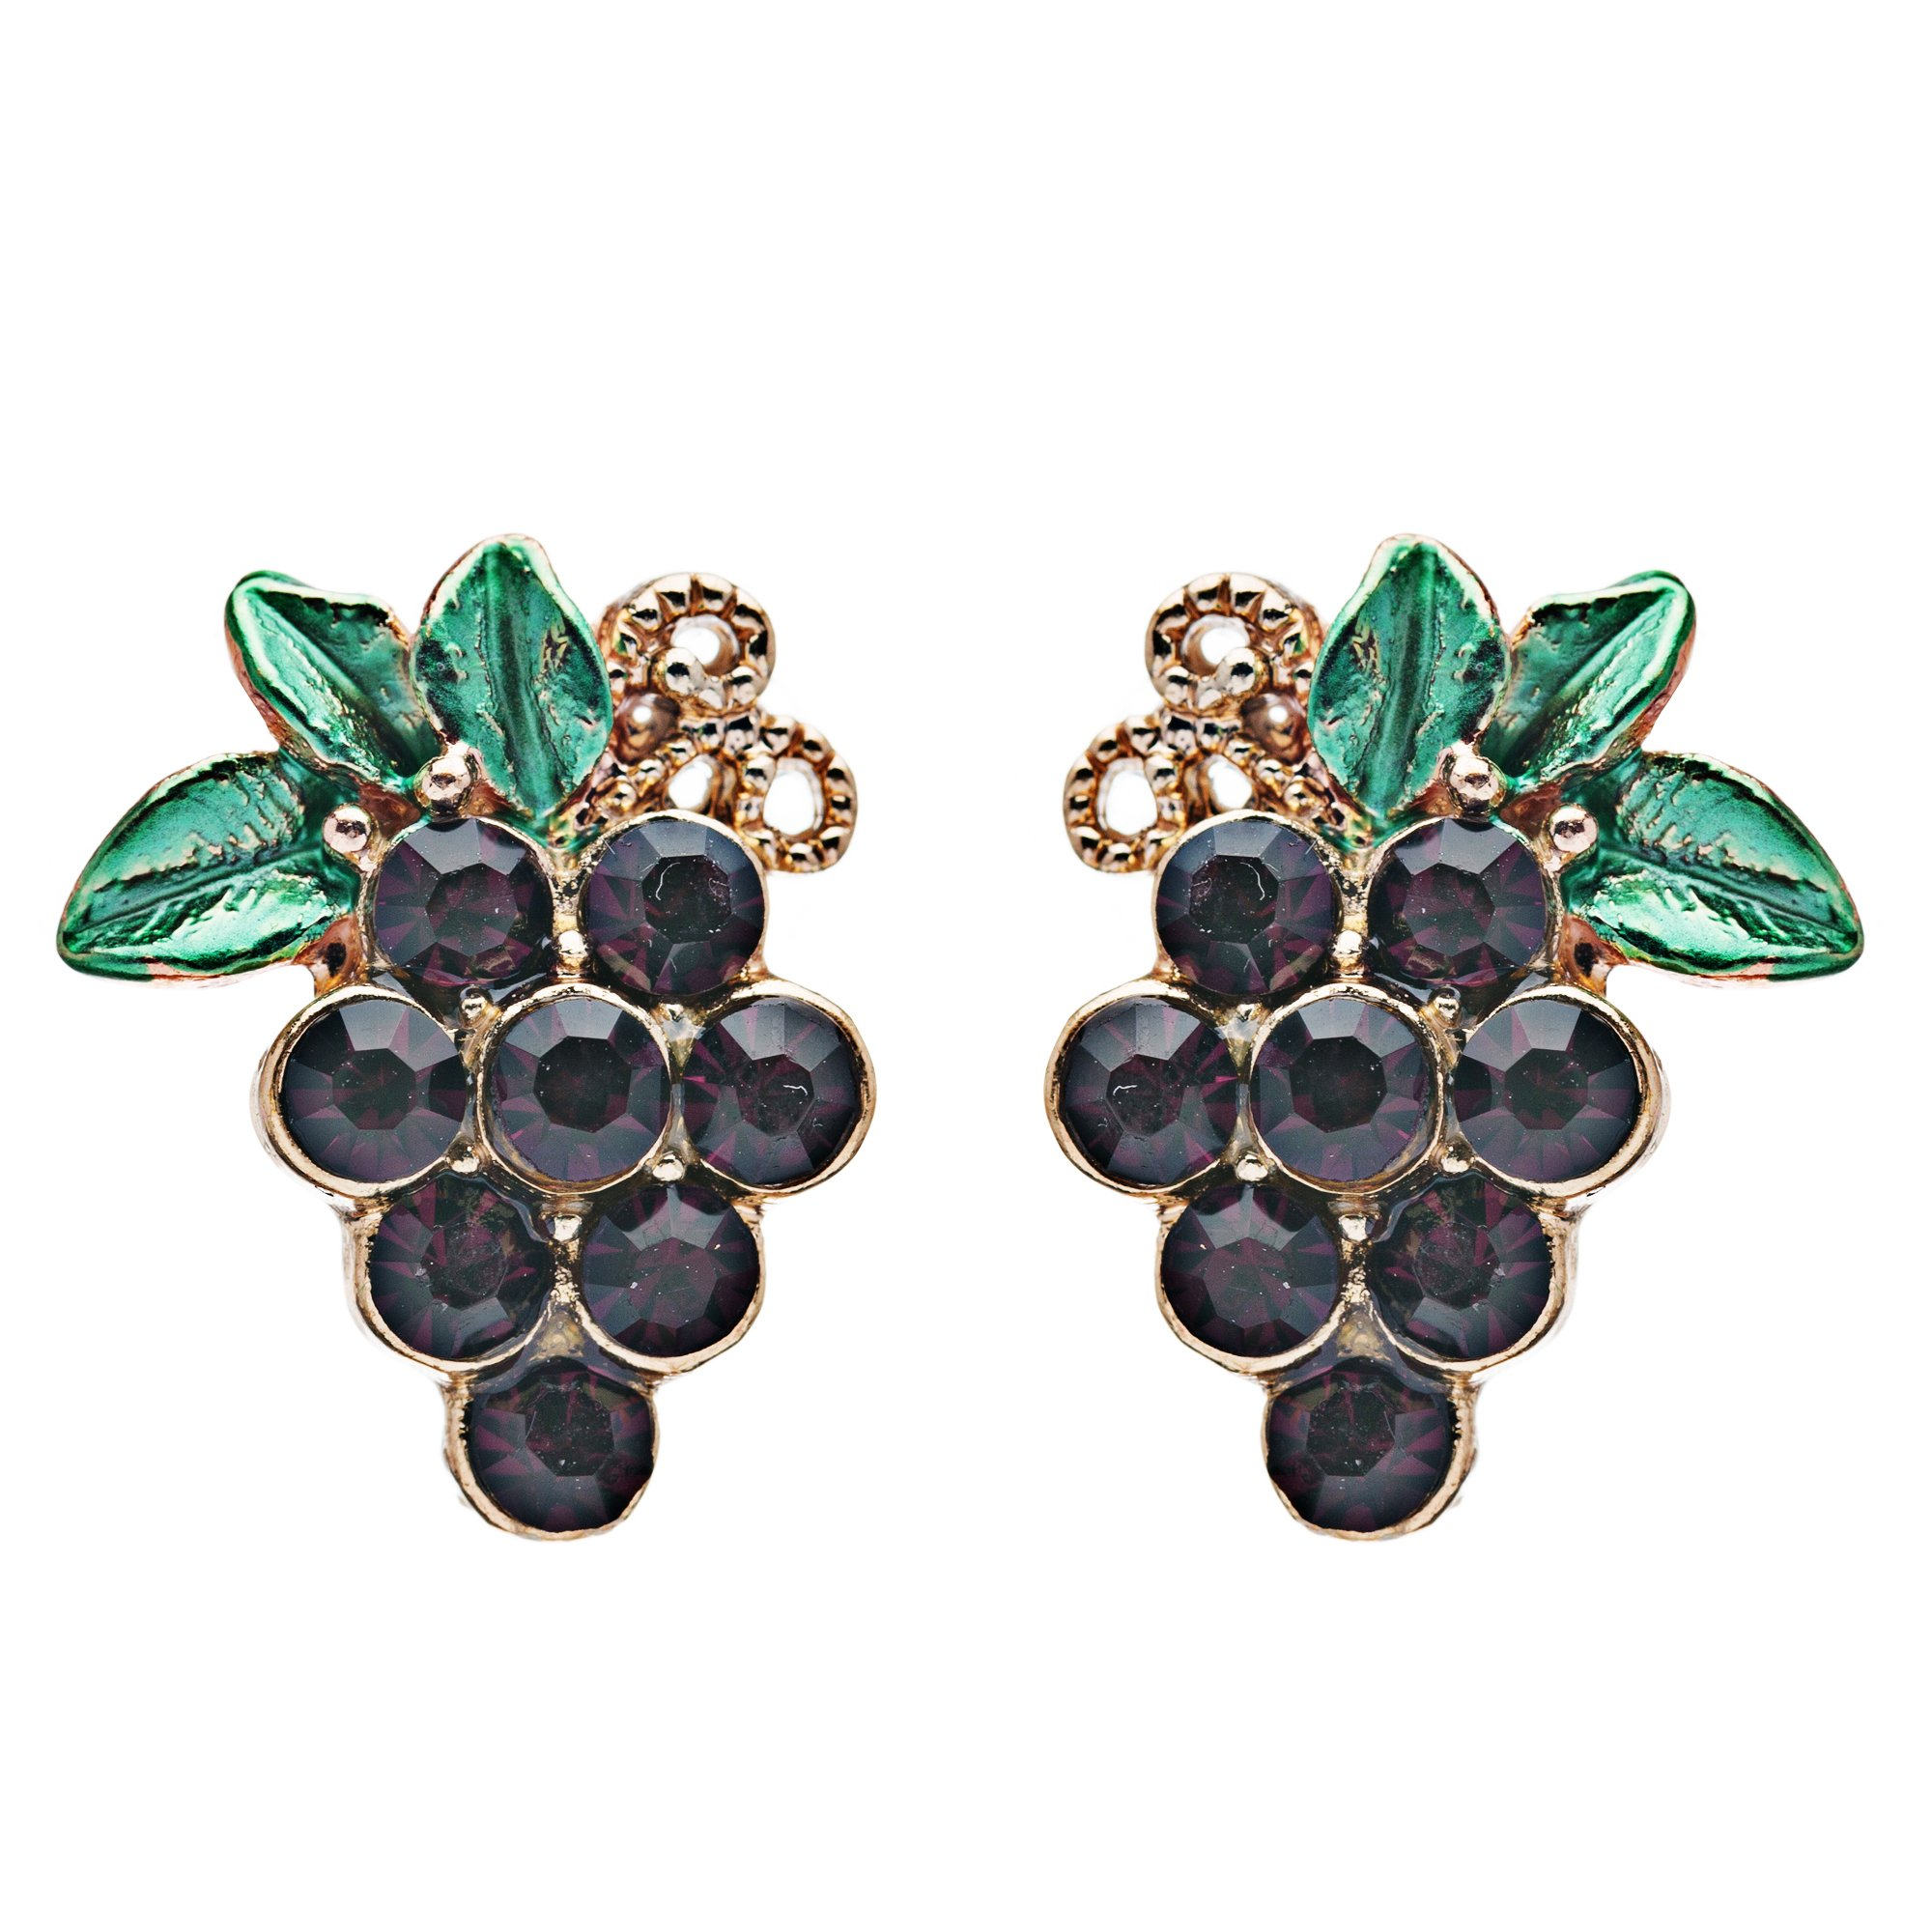 ACCESSORIESFOREVER Adorable Crystal Rhinestone Grape Fruit Charm Stud Post Earring E489 Gold Purple